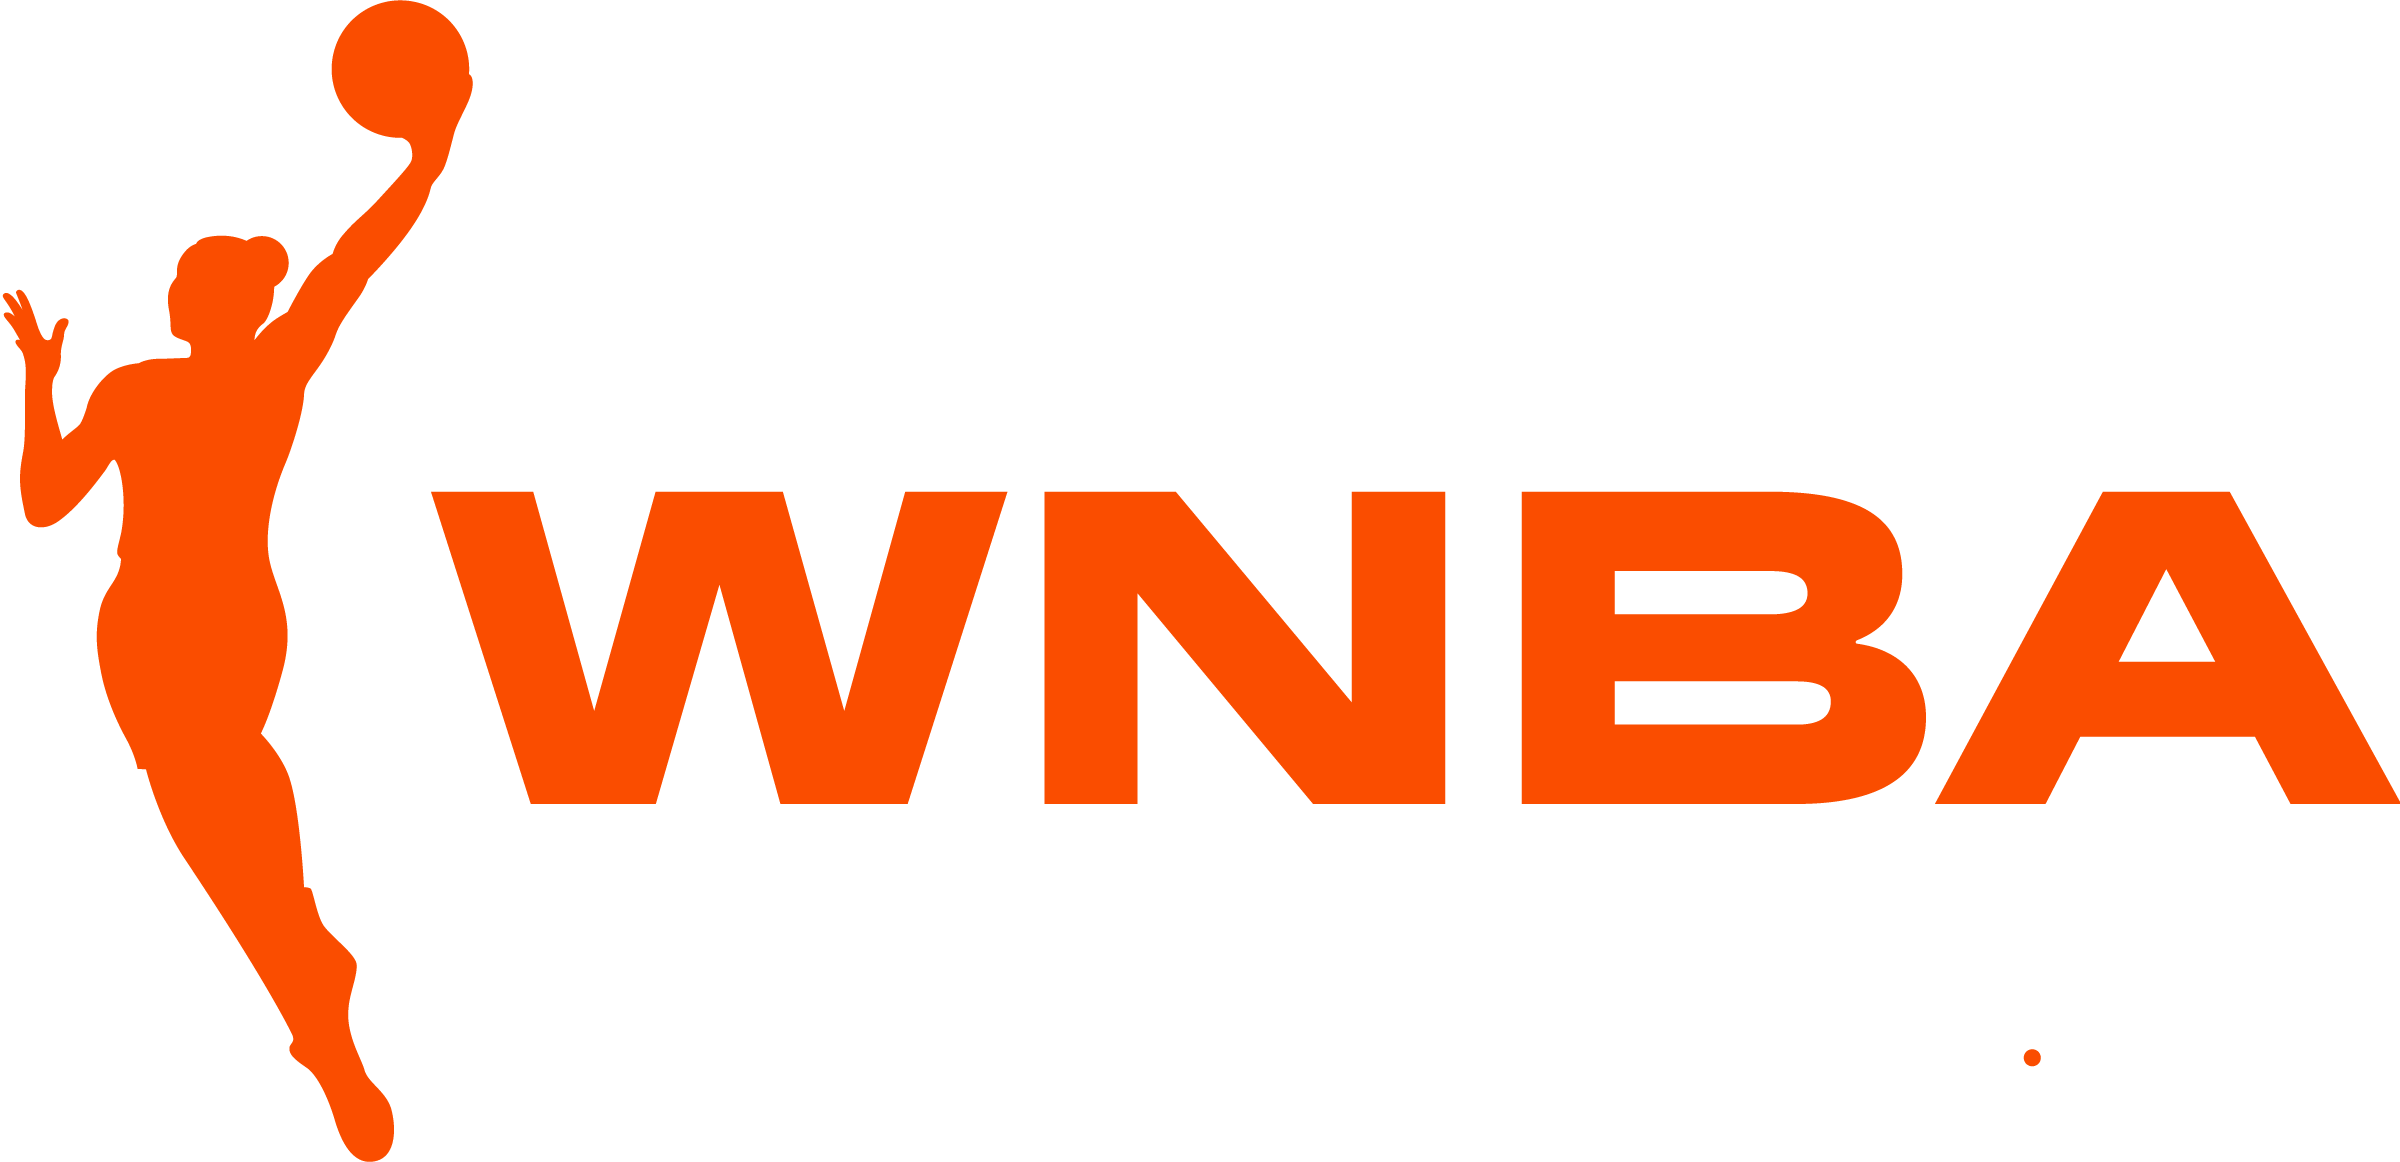 WNBA at IMG Academy, Bradenton 2020